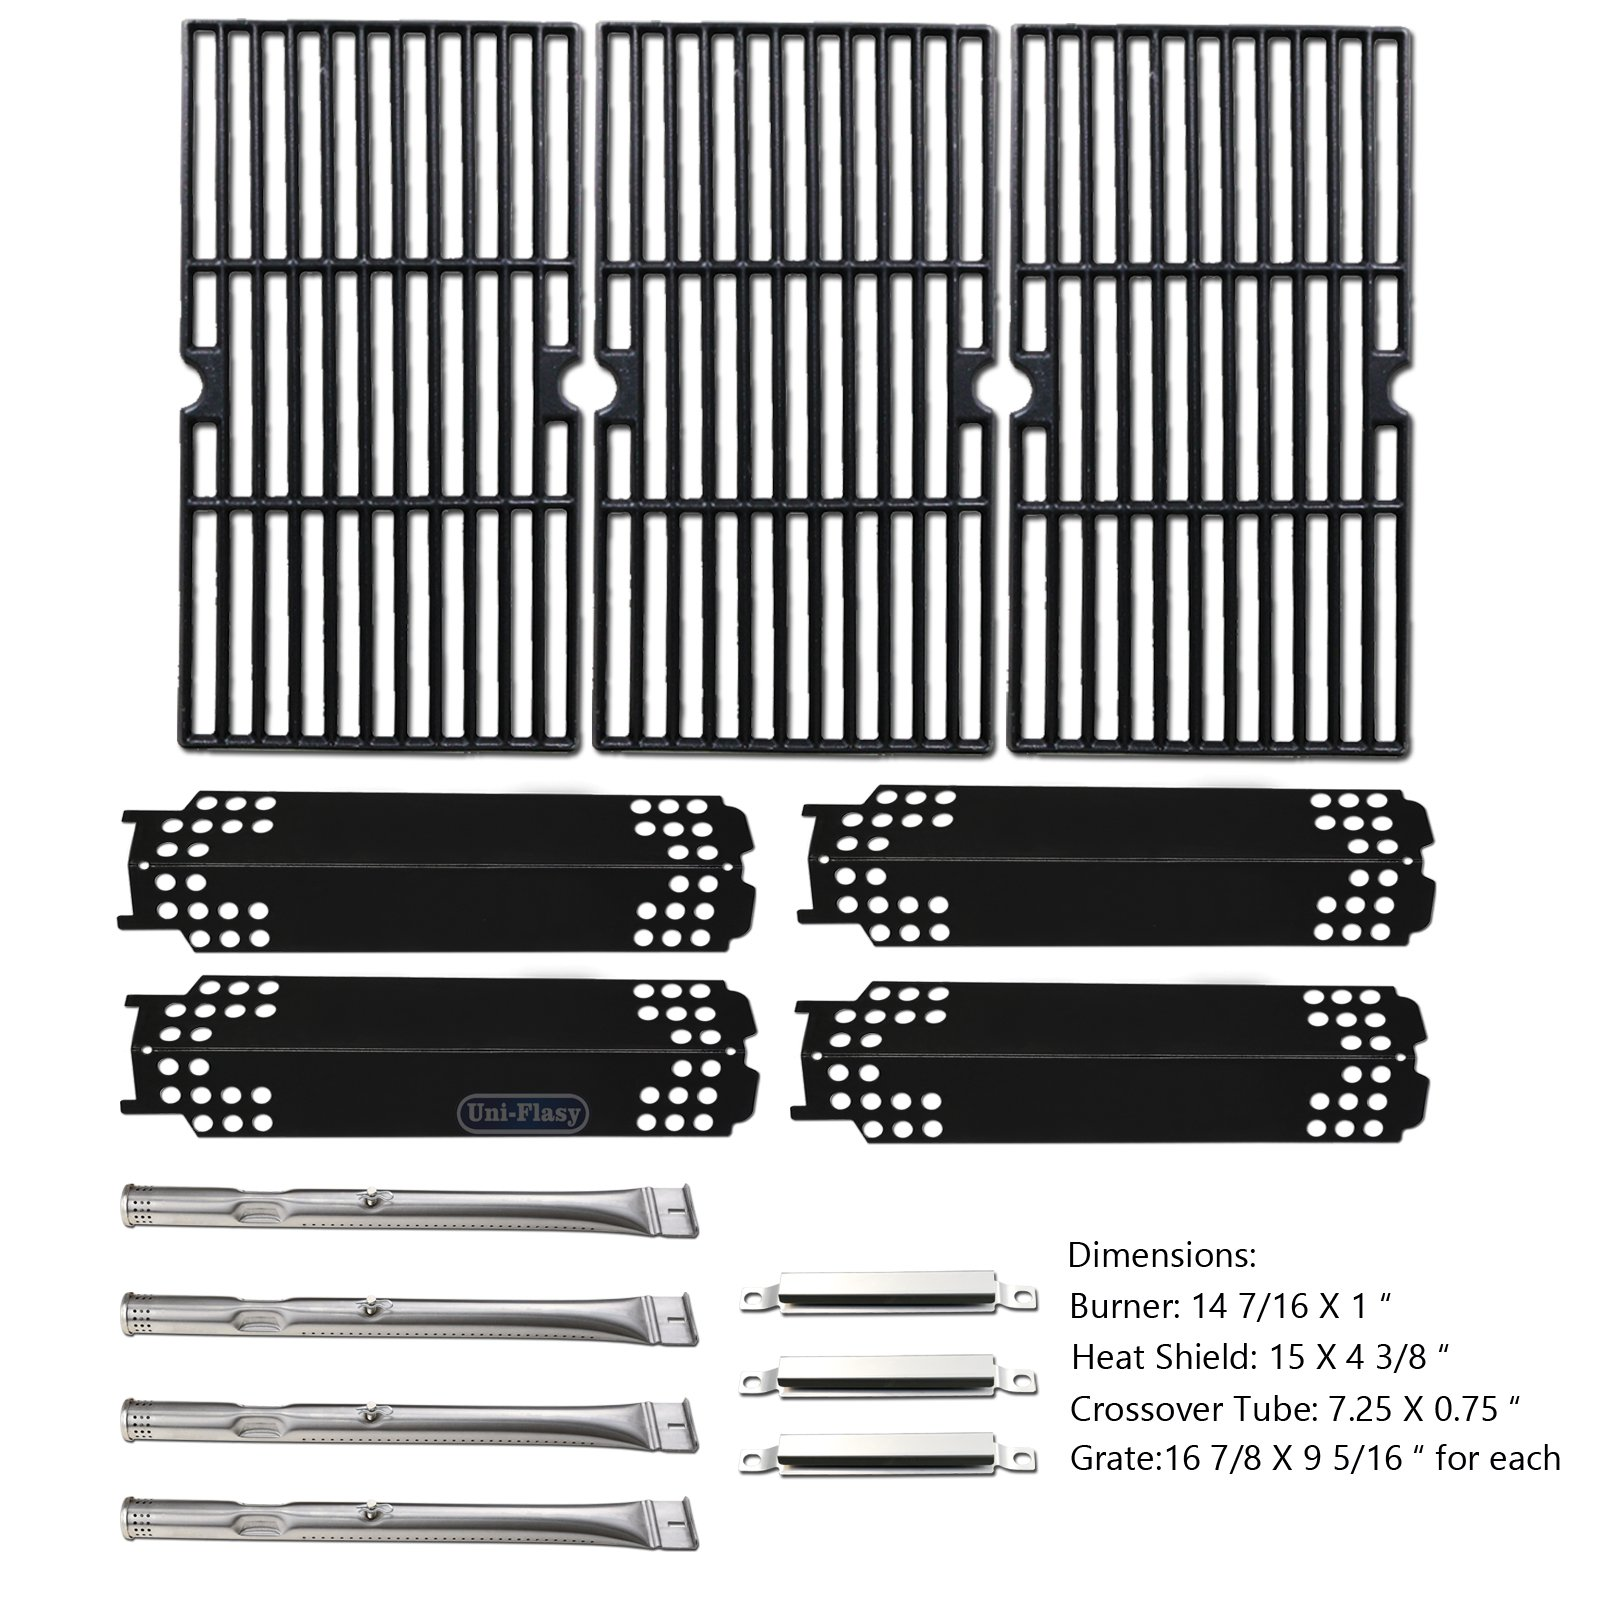 Uniflasy Gas Grill Replacement Parts Repair Kit (Burner, Heat Shield Plate, Cooking Grate, Crossover Tube) Accessories for Charbroil 463436215, 463436213 and Thermos 466360113 & More Grills